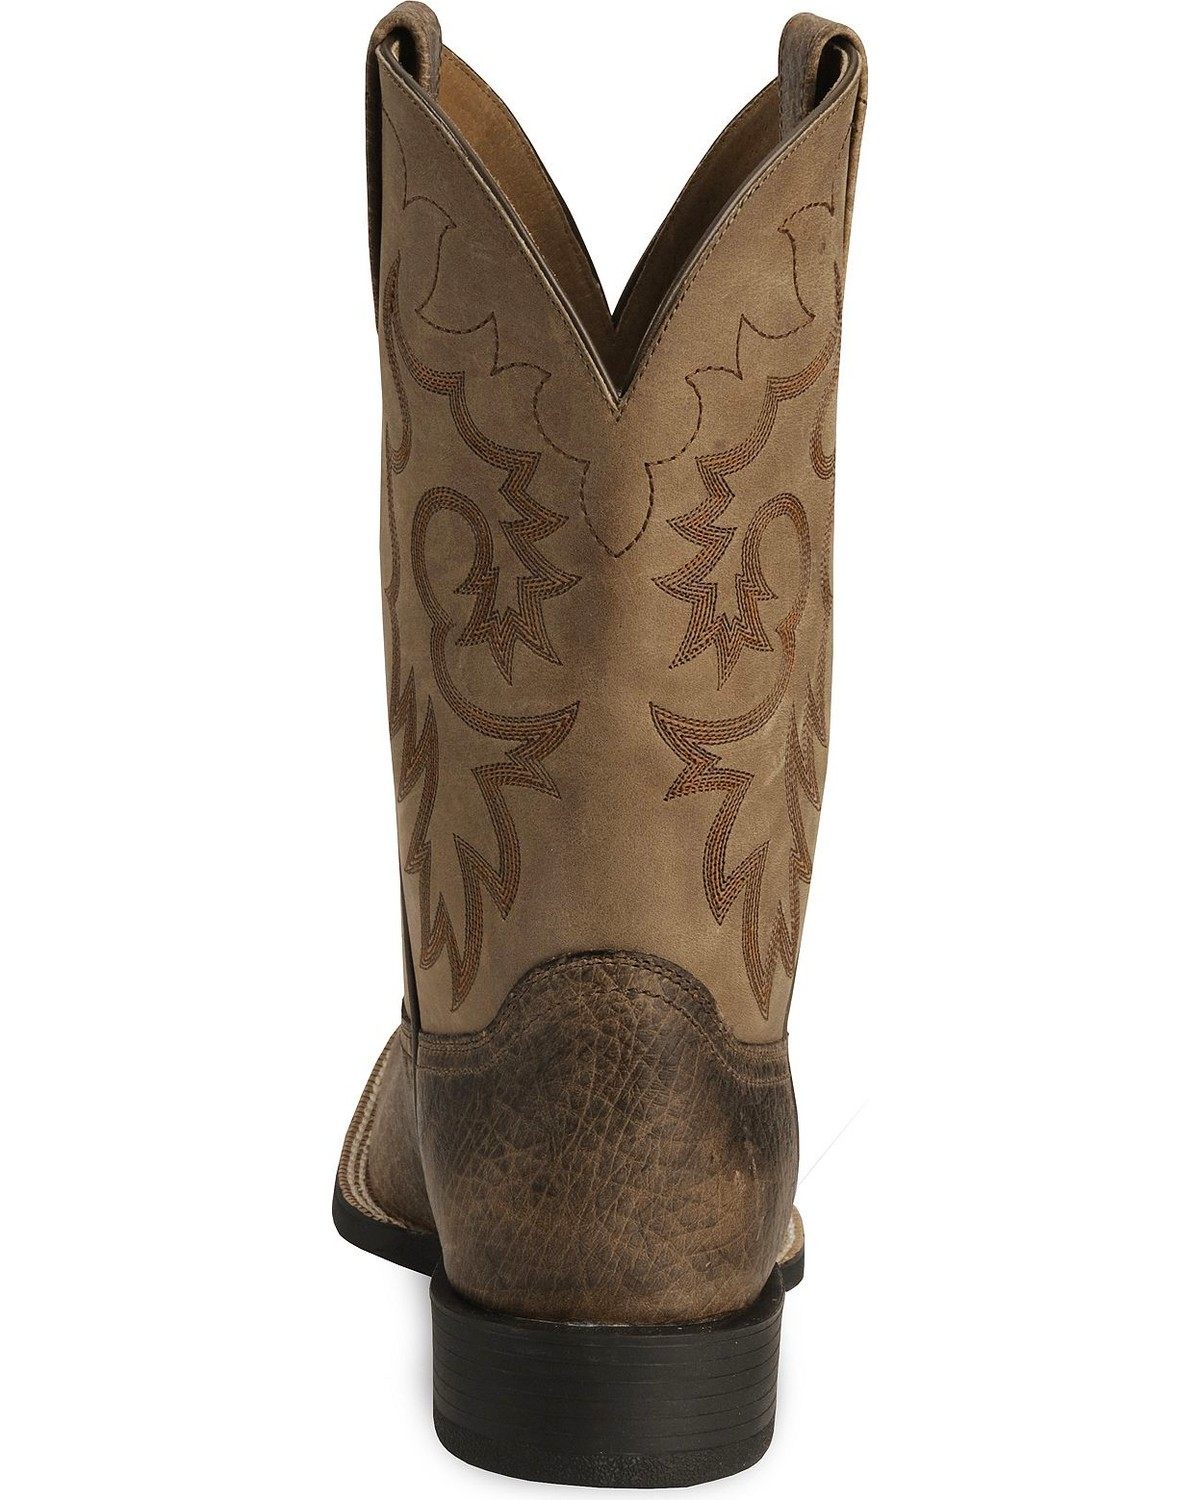 Ariat Heritage Reinsman Cowboy Boots - Square Toe | Sheplers